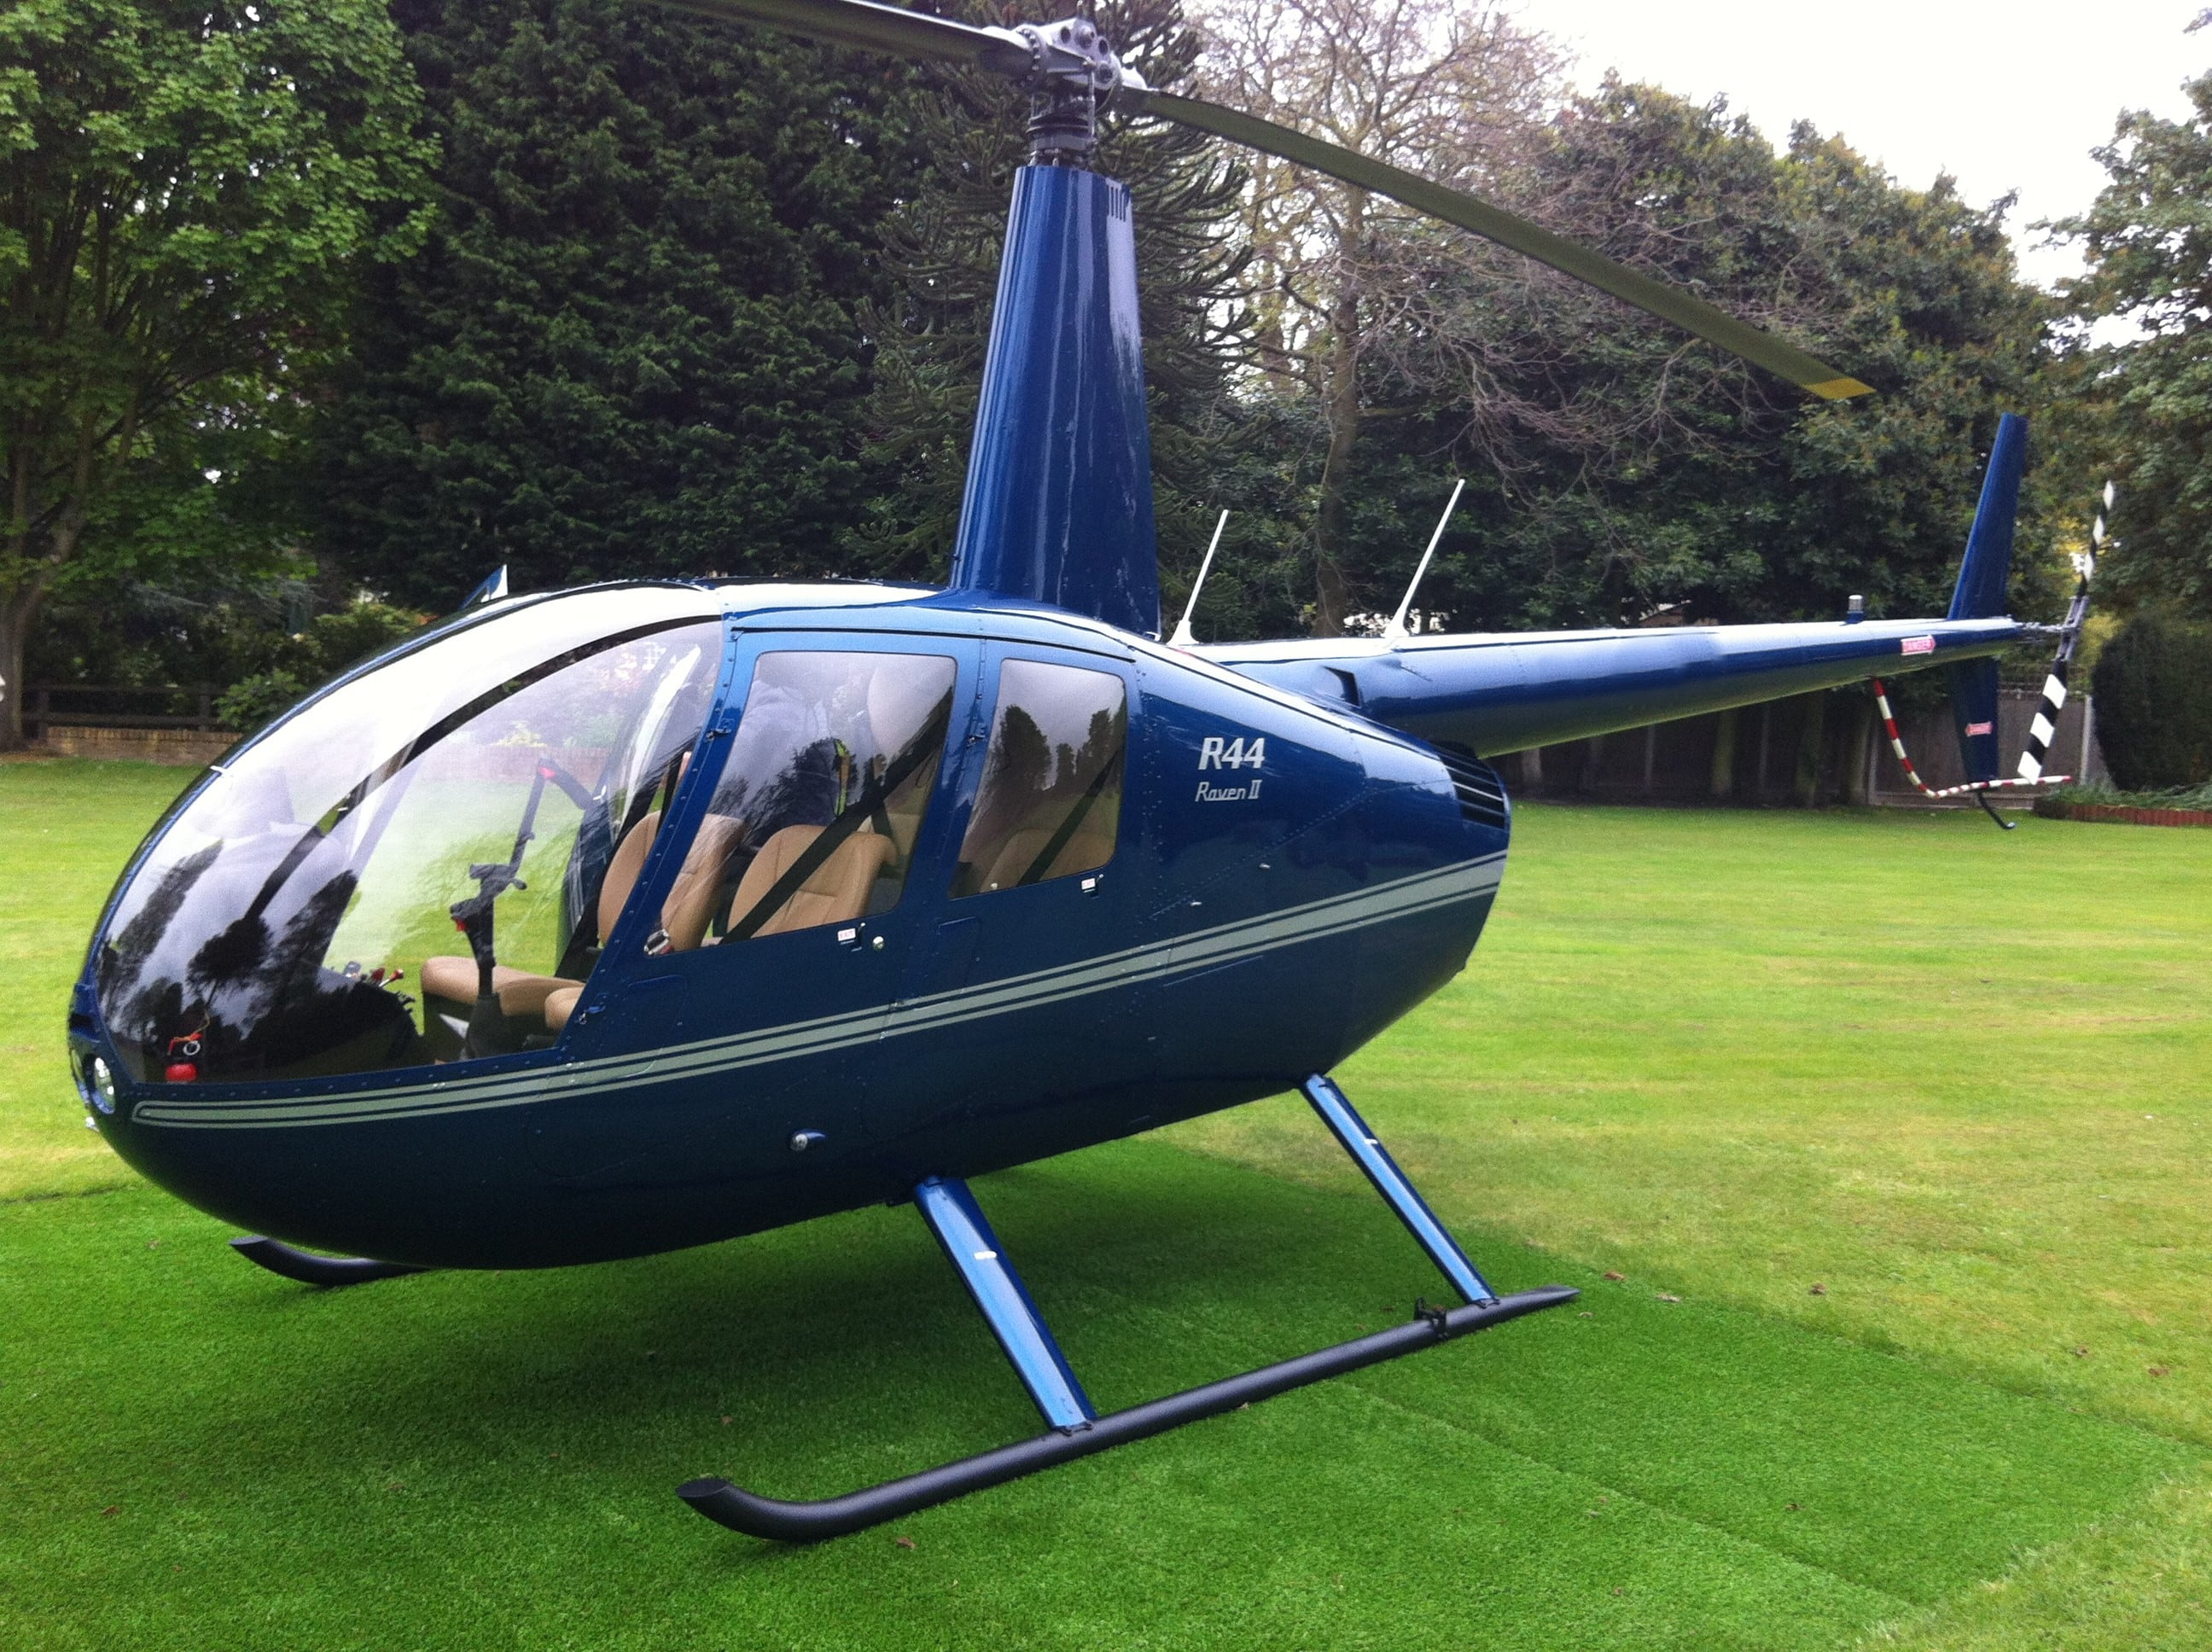 Used helicopter sales | Sloane Helicopters | Helicopter